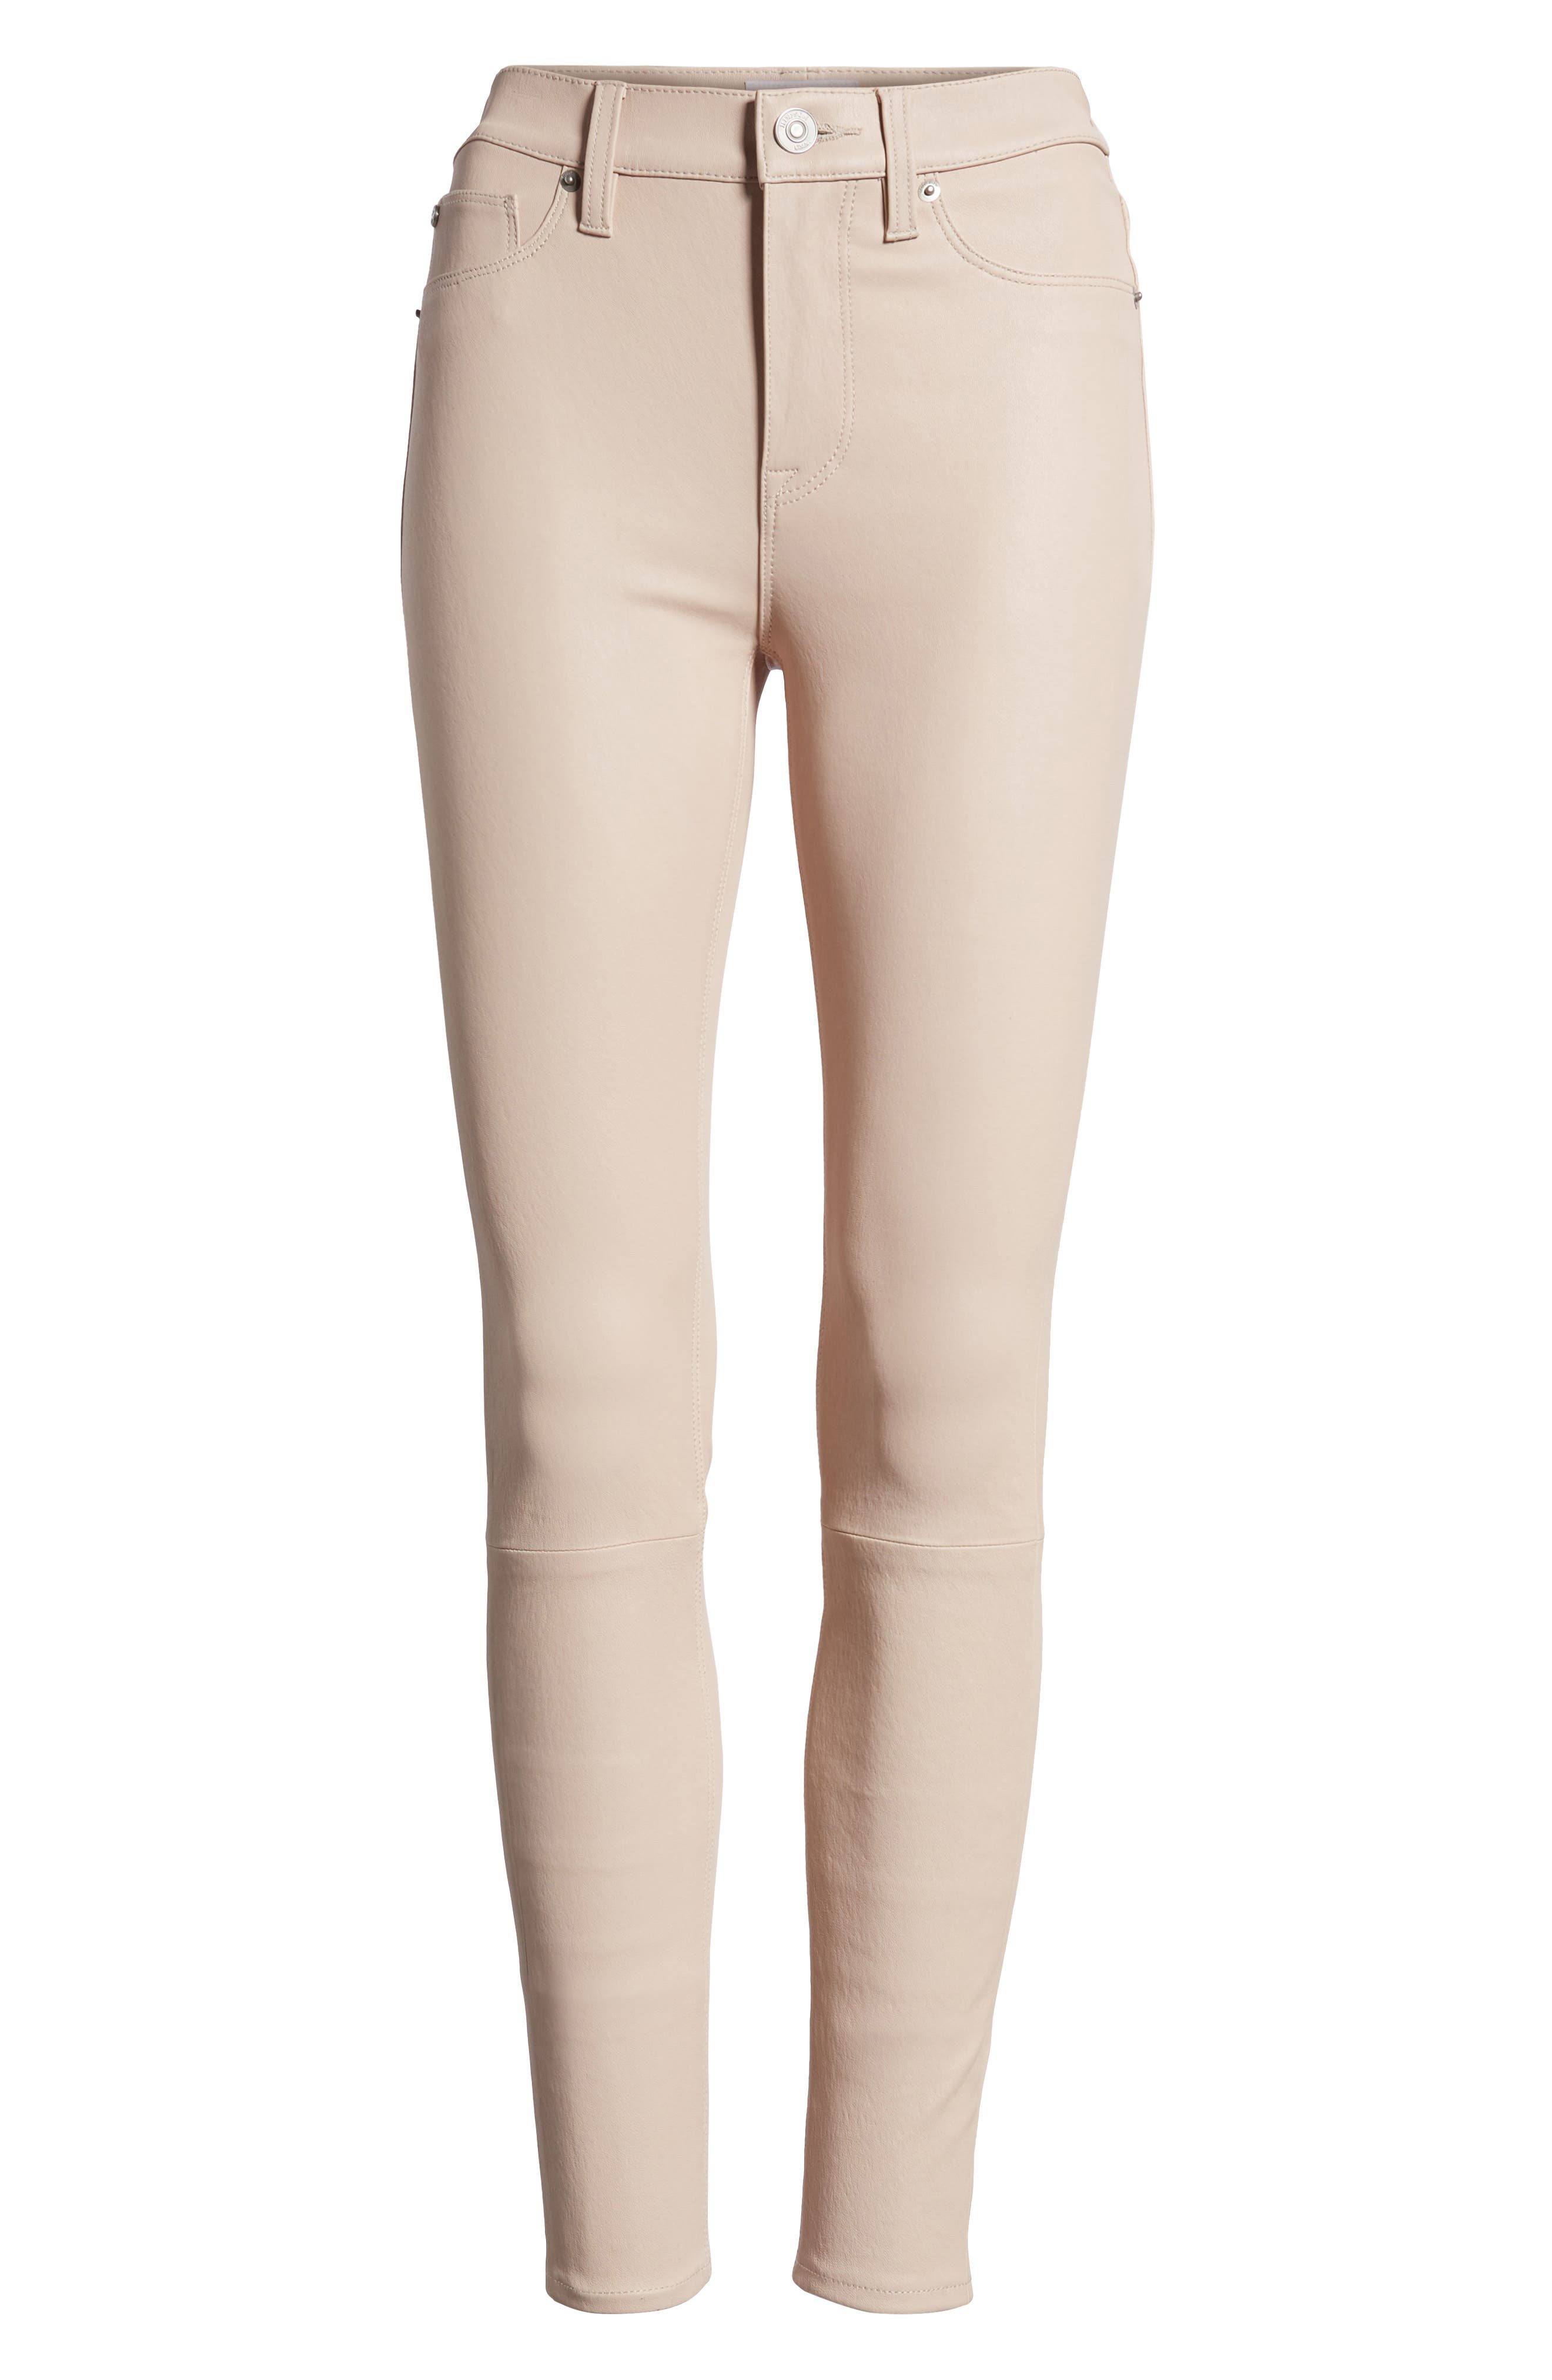 Barbara High Waist Ankle Skinny Leather Jeans,                             Alternate thumbnail 6, color,                             Blushing